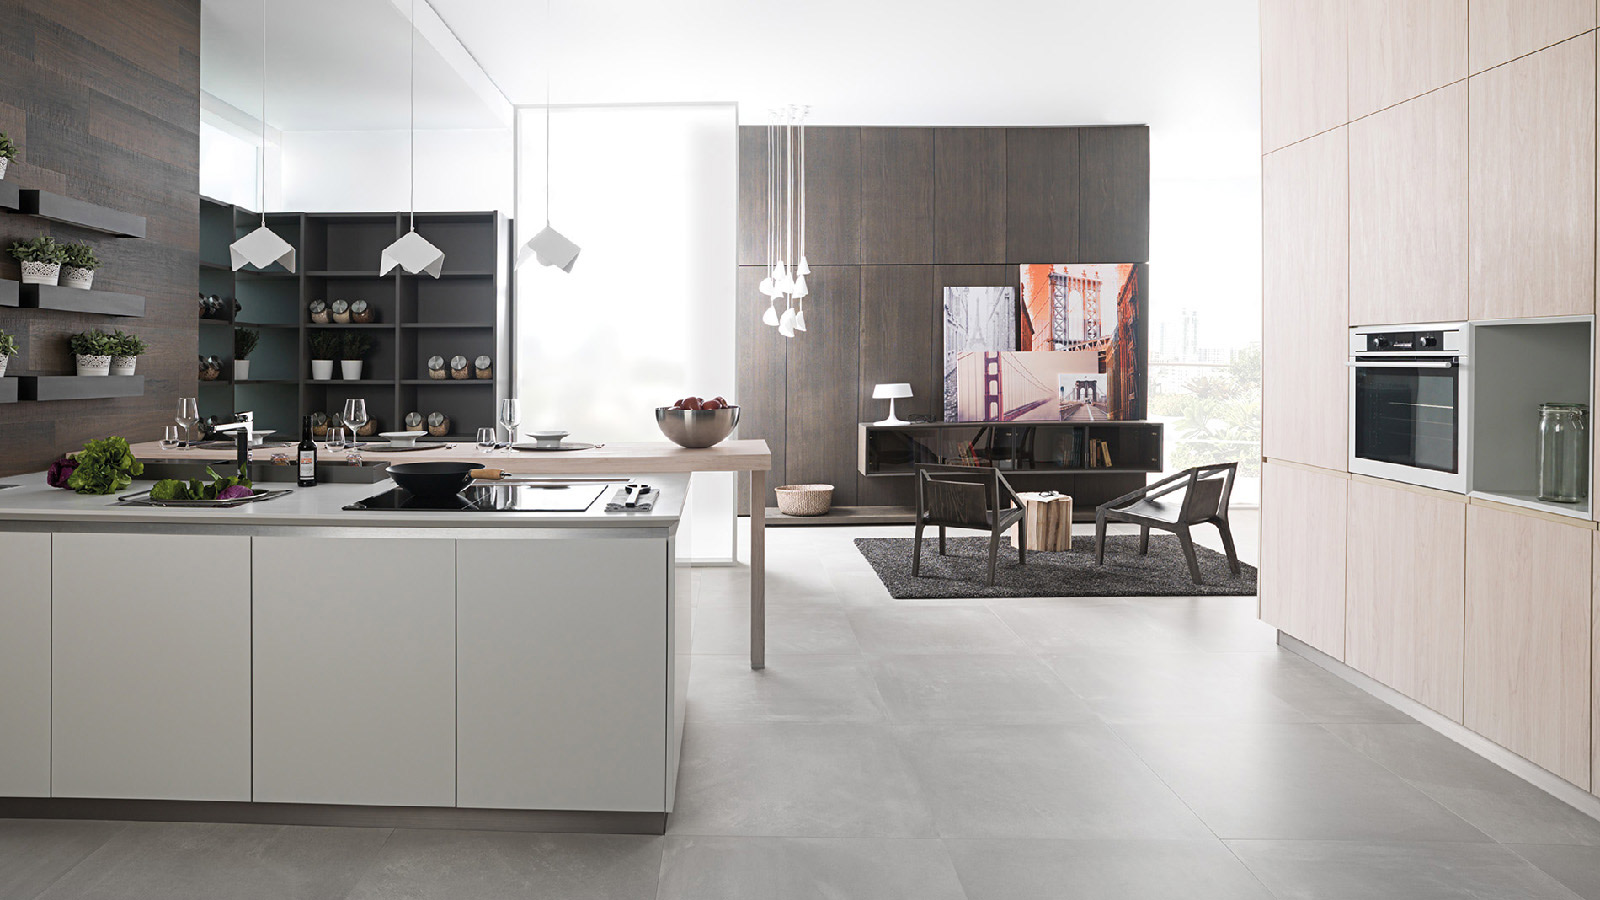 Trends in cement: kitchens made of aesthetic material